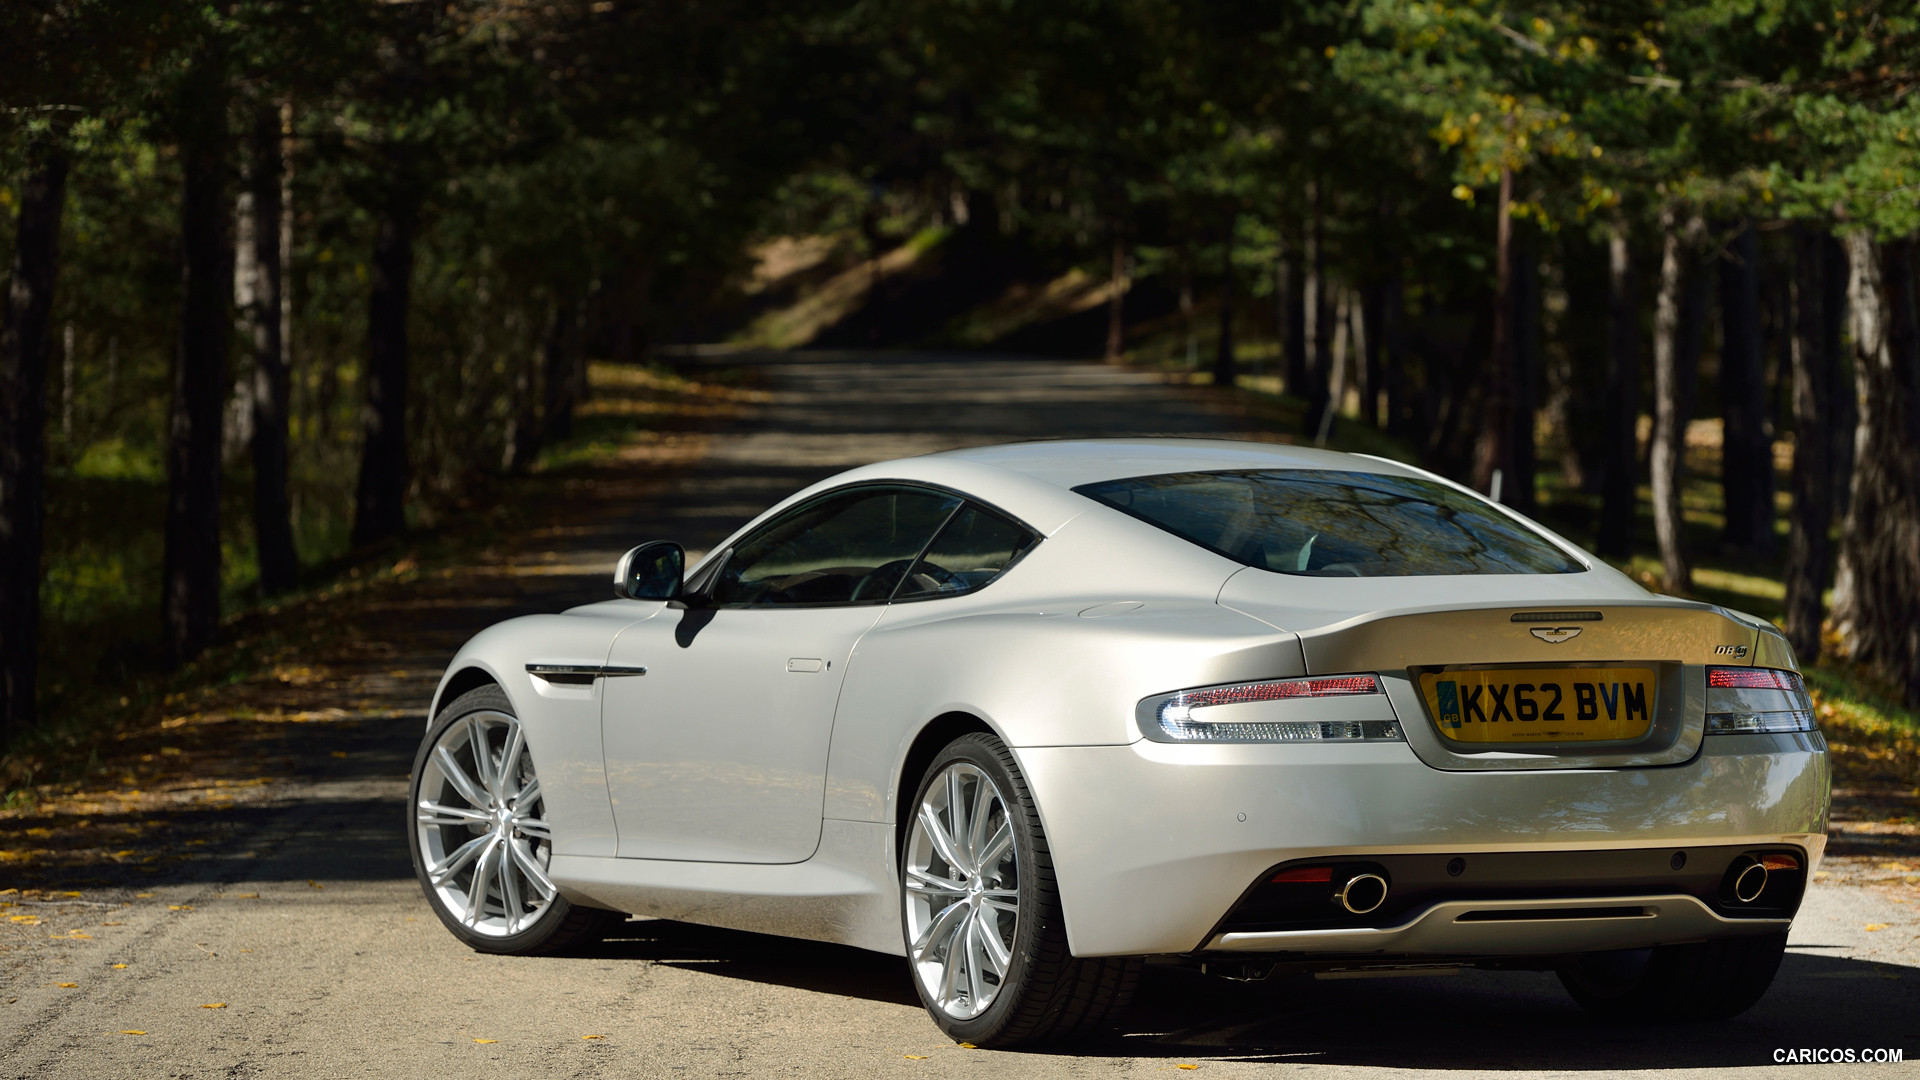 2013 aston martin db9 with 366 2013 Aston Martin Db9 4 on 2016 likewise Quez98 likewise 2013 Aston Martin Db9 Review And Pictures Pictures also Honda Nsx further Gallery Detail.